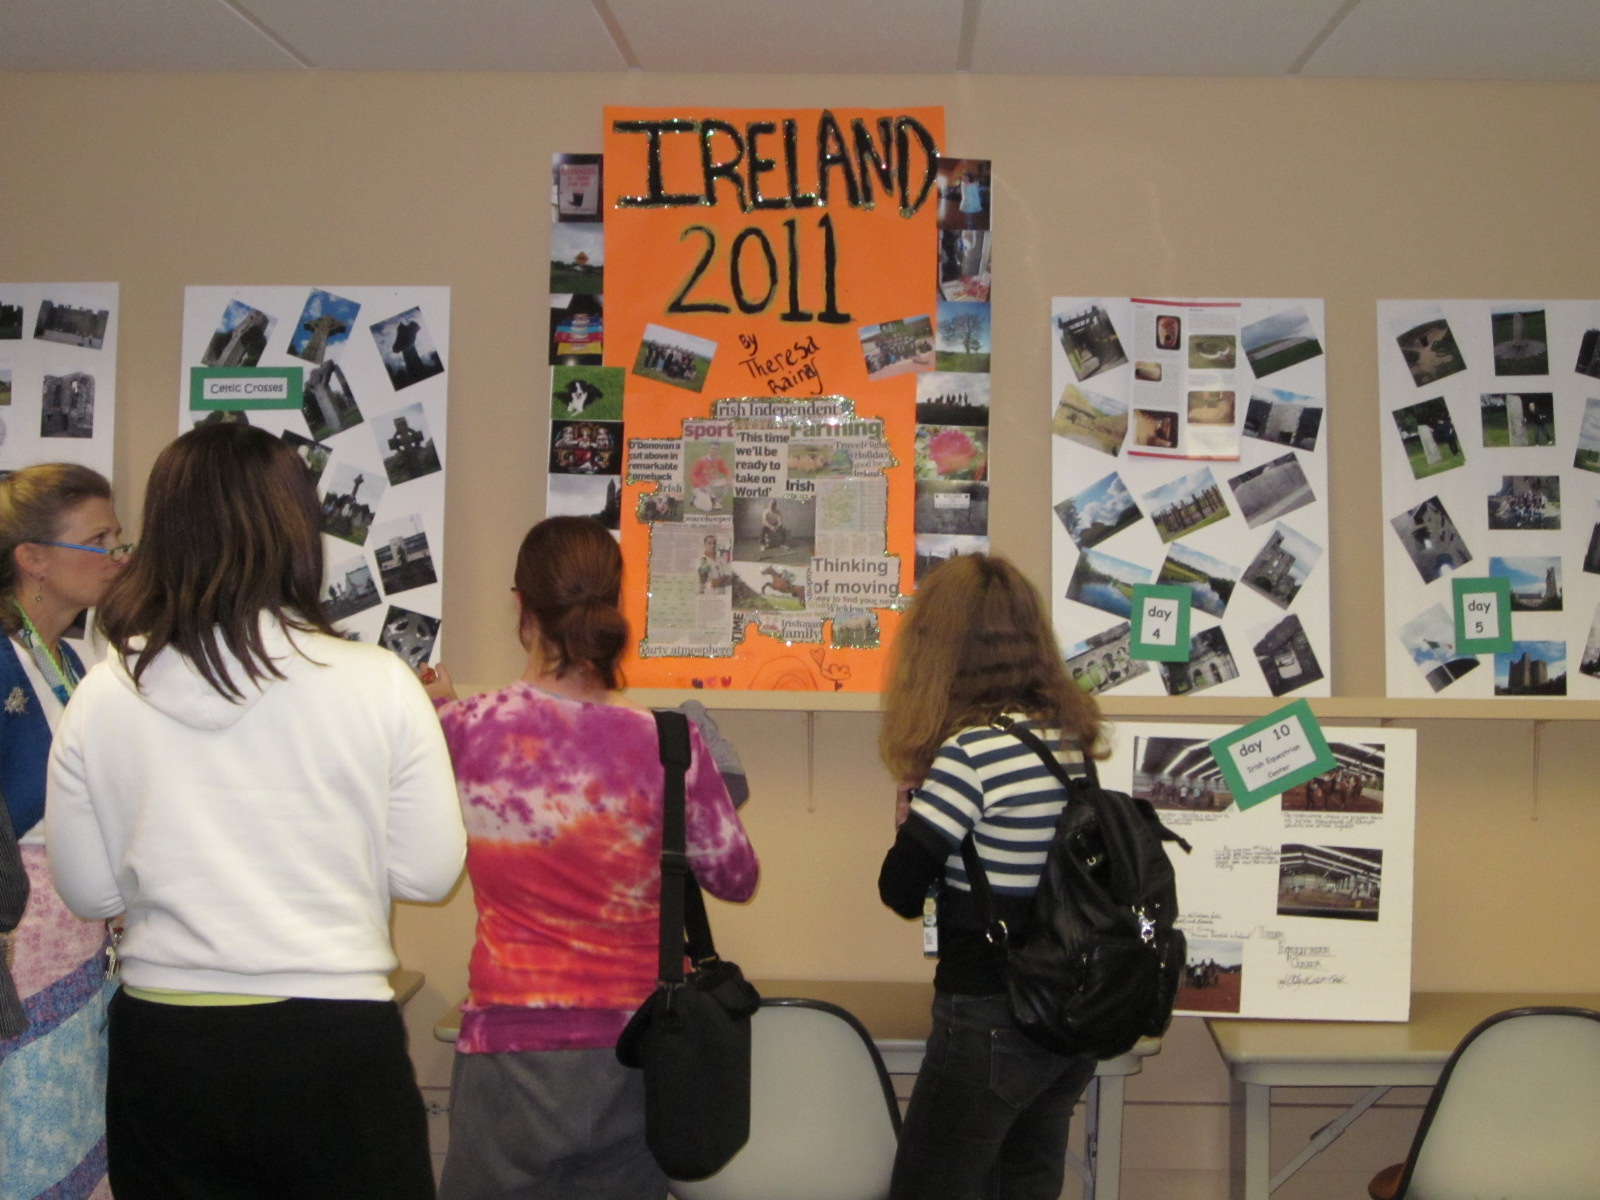 ireland exhibit